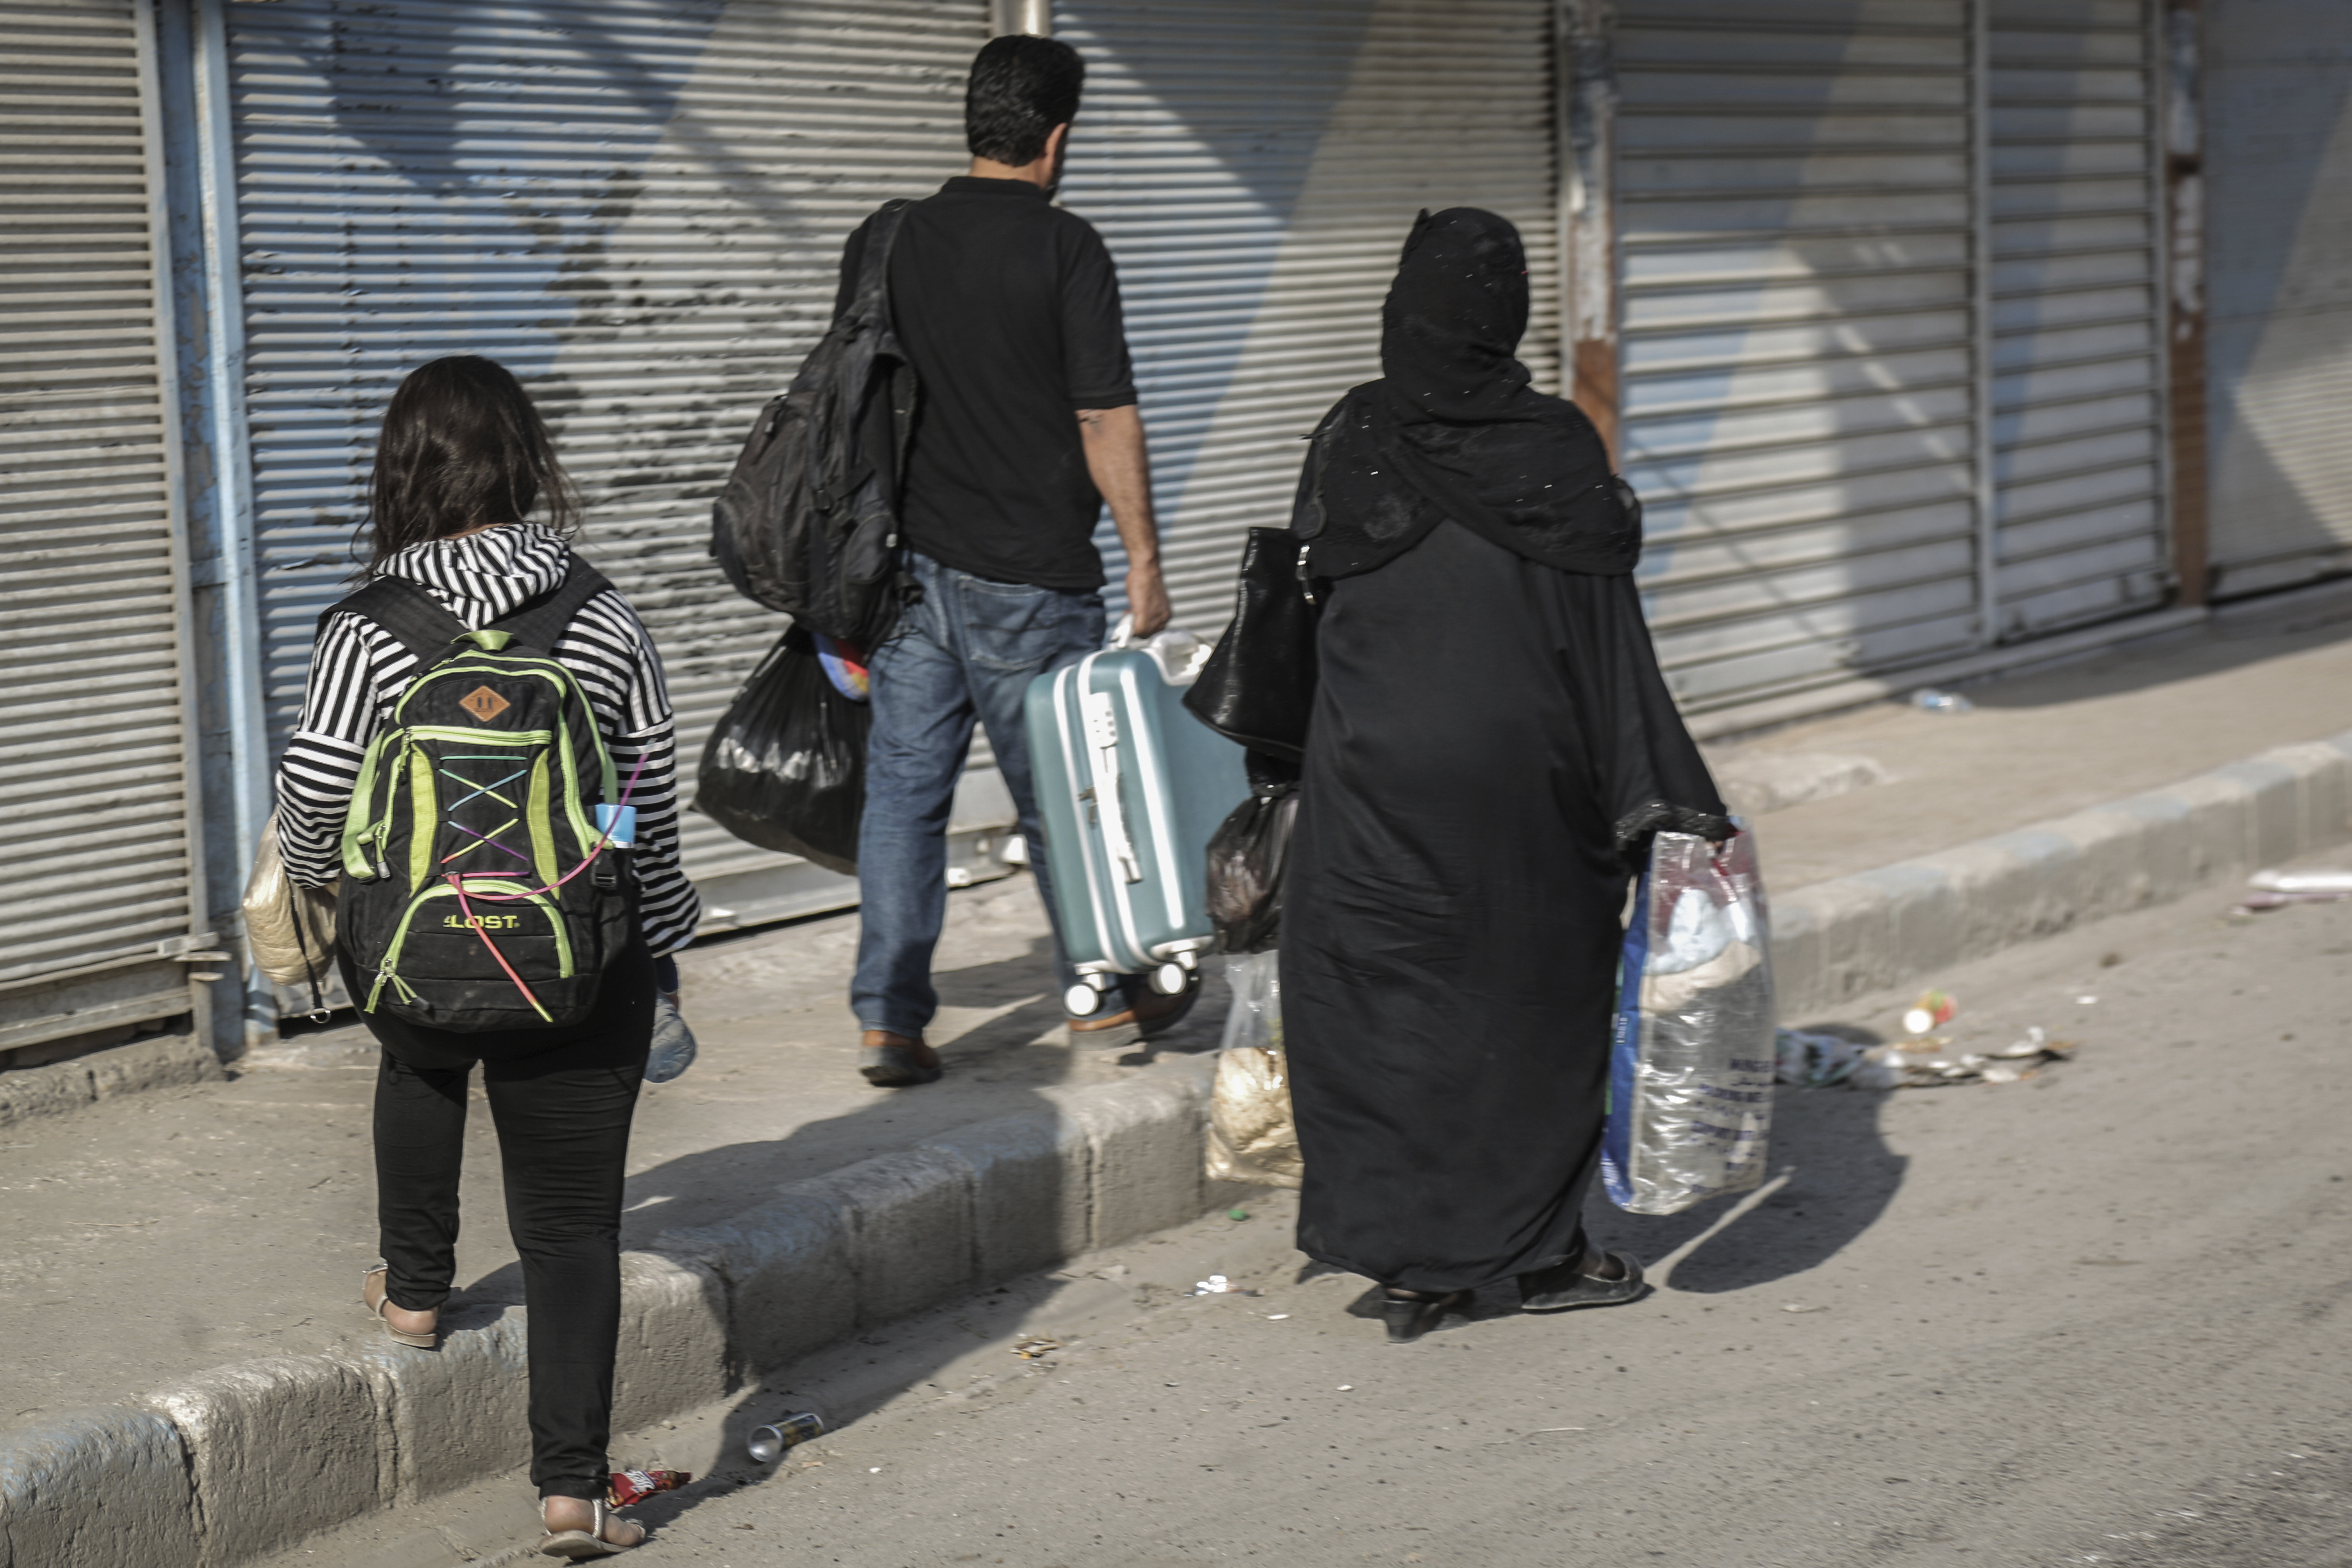 14 October 2019, Syria, Tell Abiad: Residents flee from the fighting. Photo by: Anas Alkharboutli/picture-alliance/dpa/AP Images